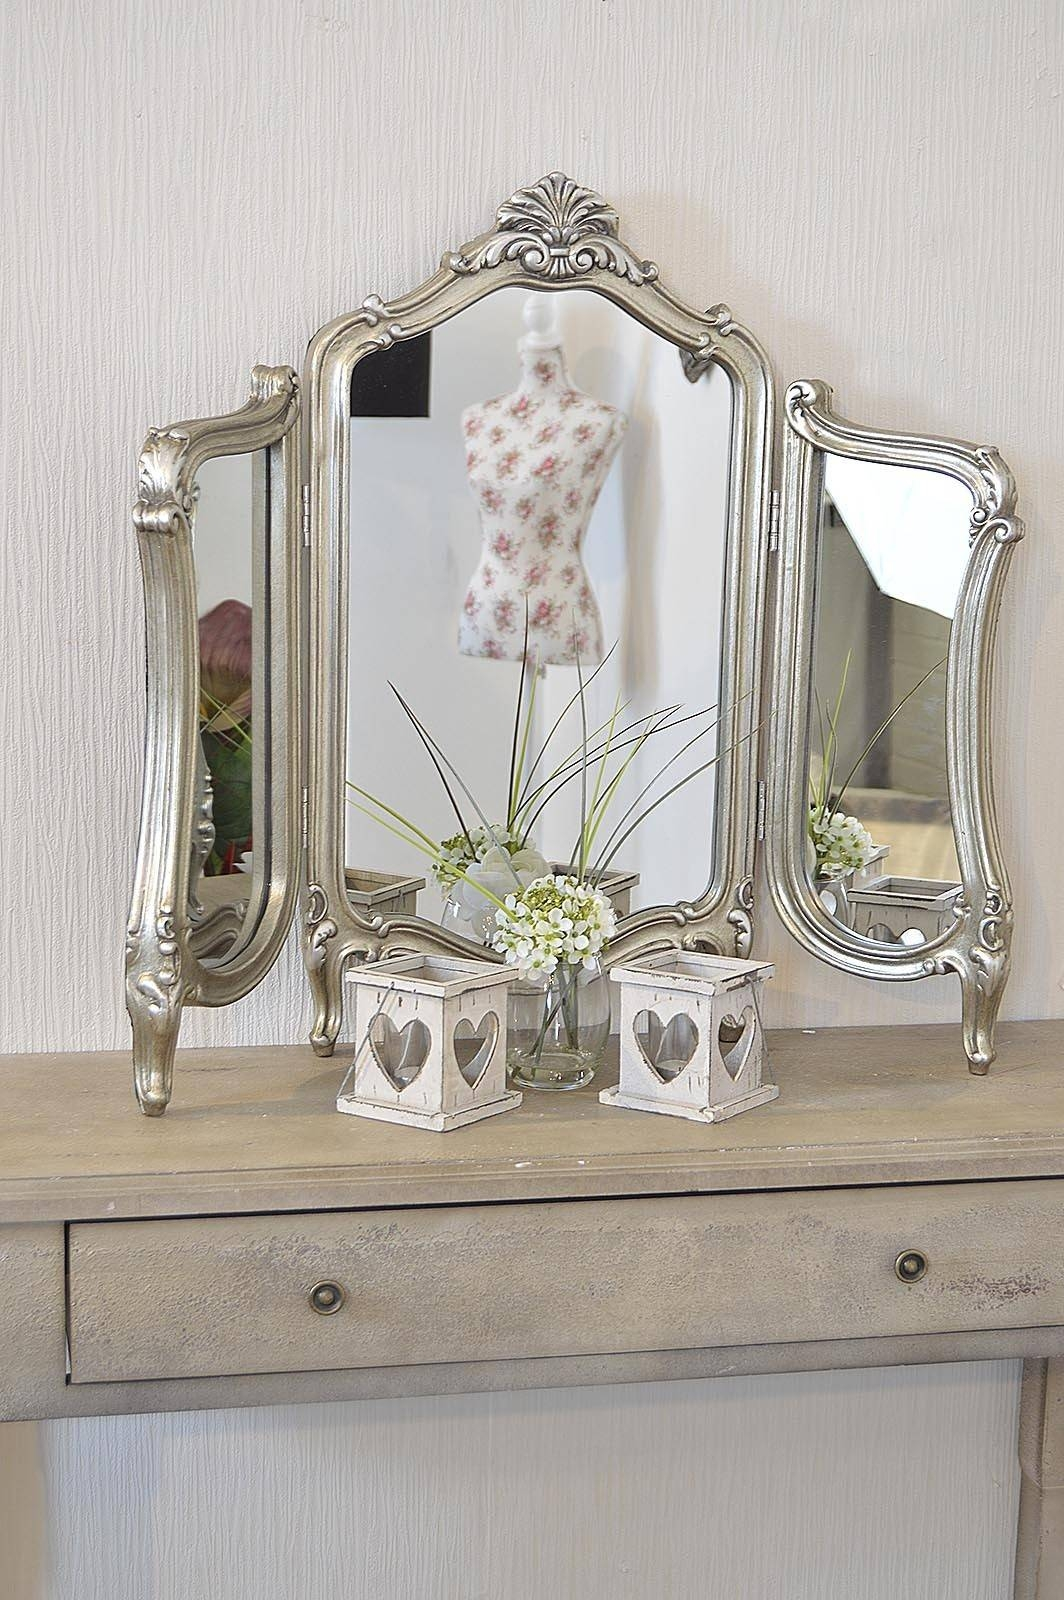 Dressing Table Mirrors | Best Decor Things in Ornate Dressing Table Mirrors (Image 2 of 15)